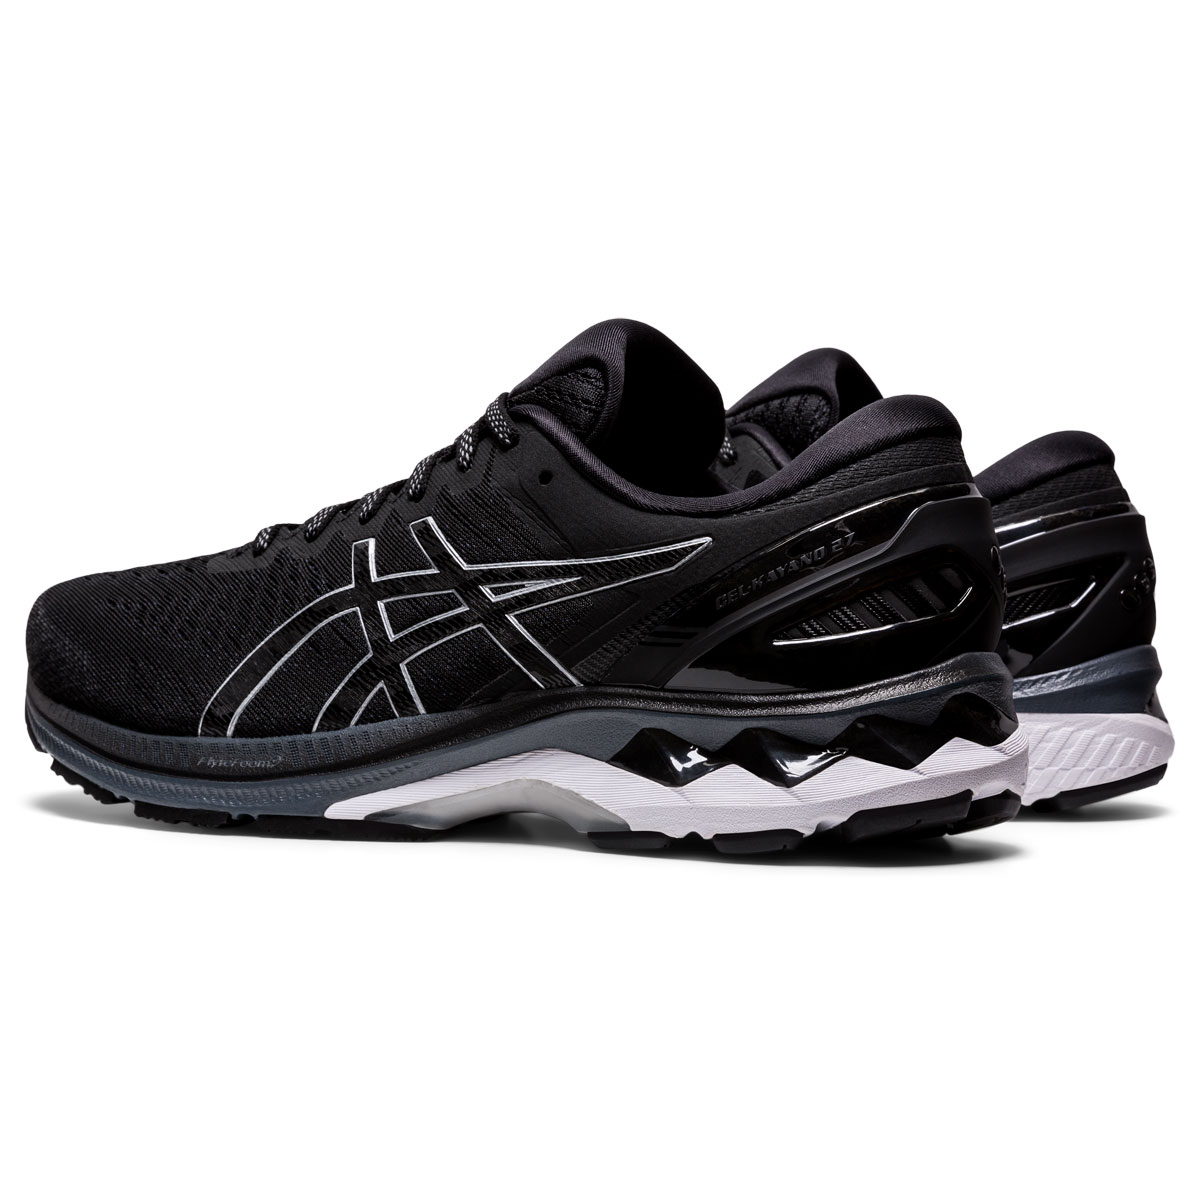 Men's Asics GEL-Kayano 27 Running Shoe, , large, image 4